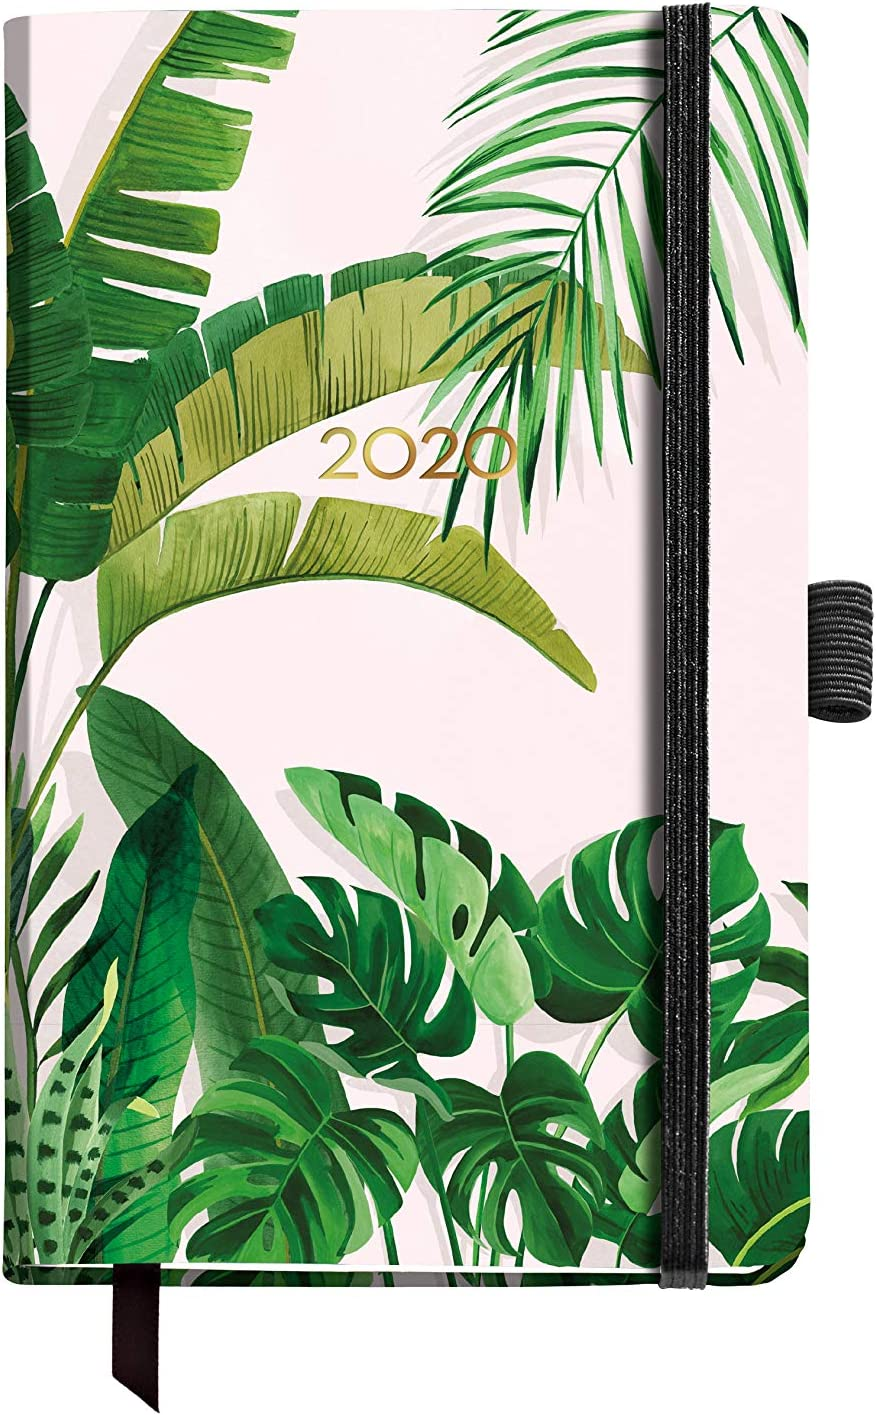 Miquelrius 31199 - Agenda 2020, Semana Vista Horizontal (90 x 140 mm), de bolsillo, Palm Beach, Castellano